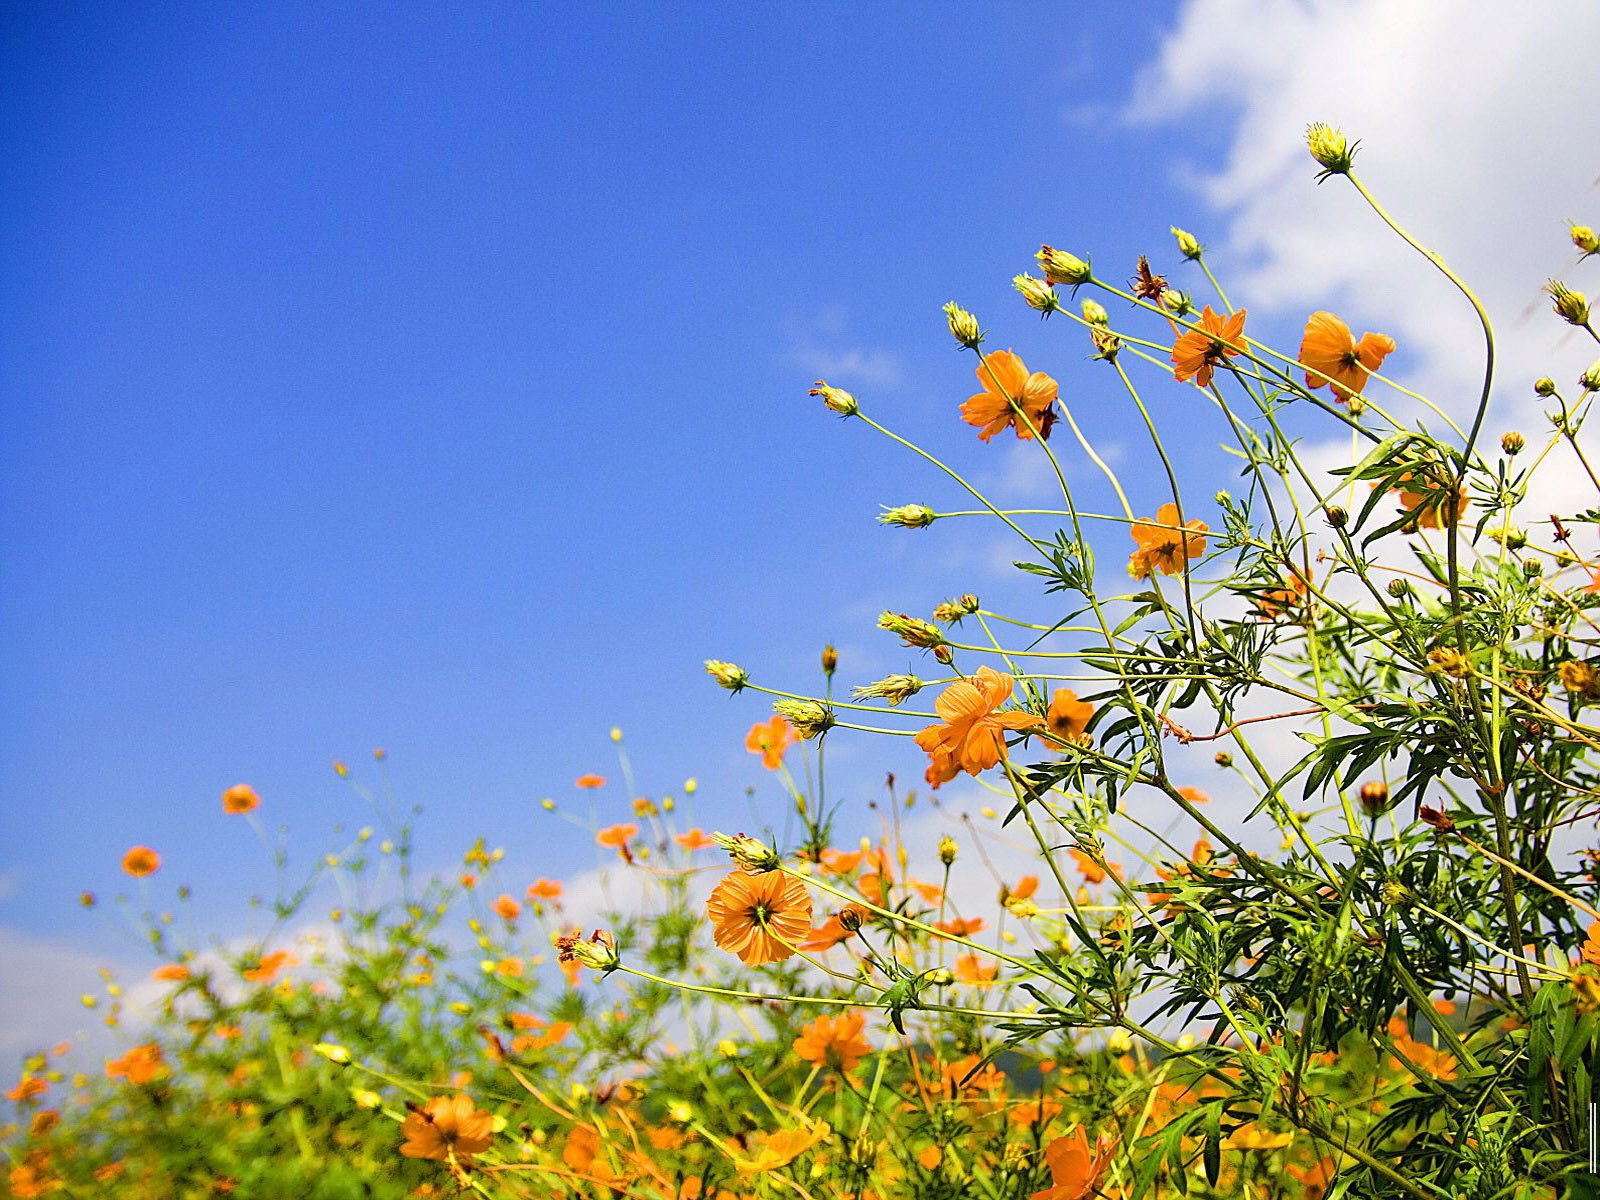 high definition spring wallpaper 150x150 1600x1200